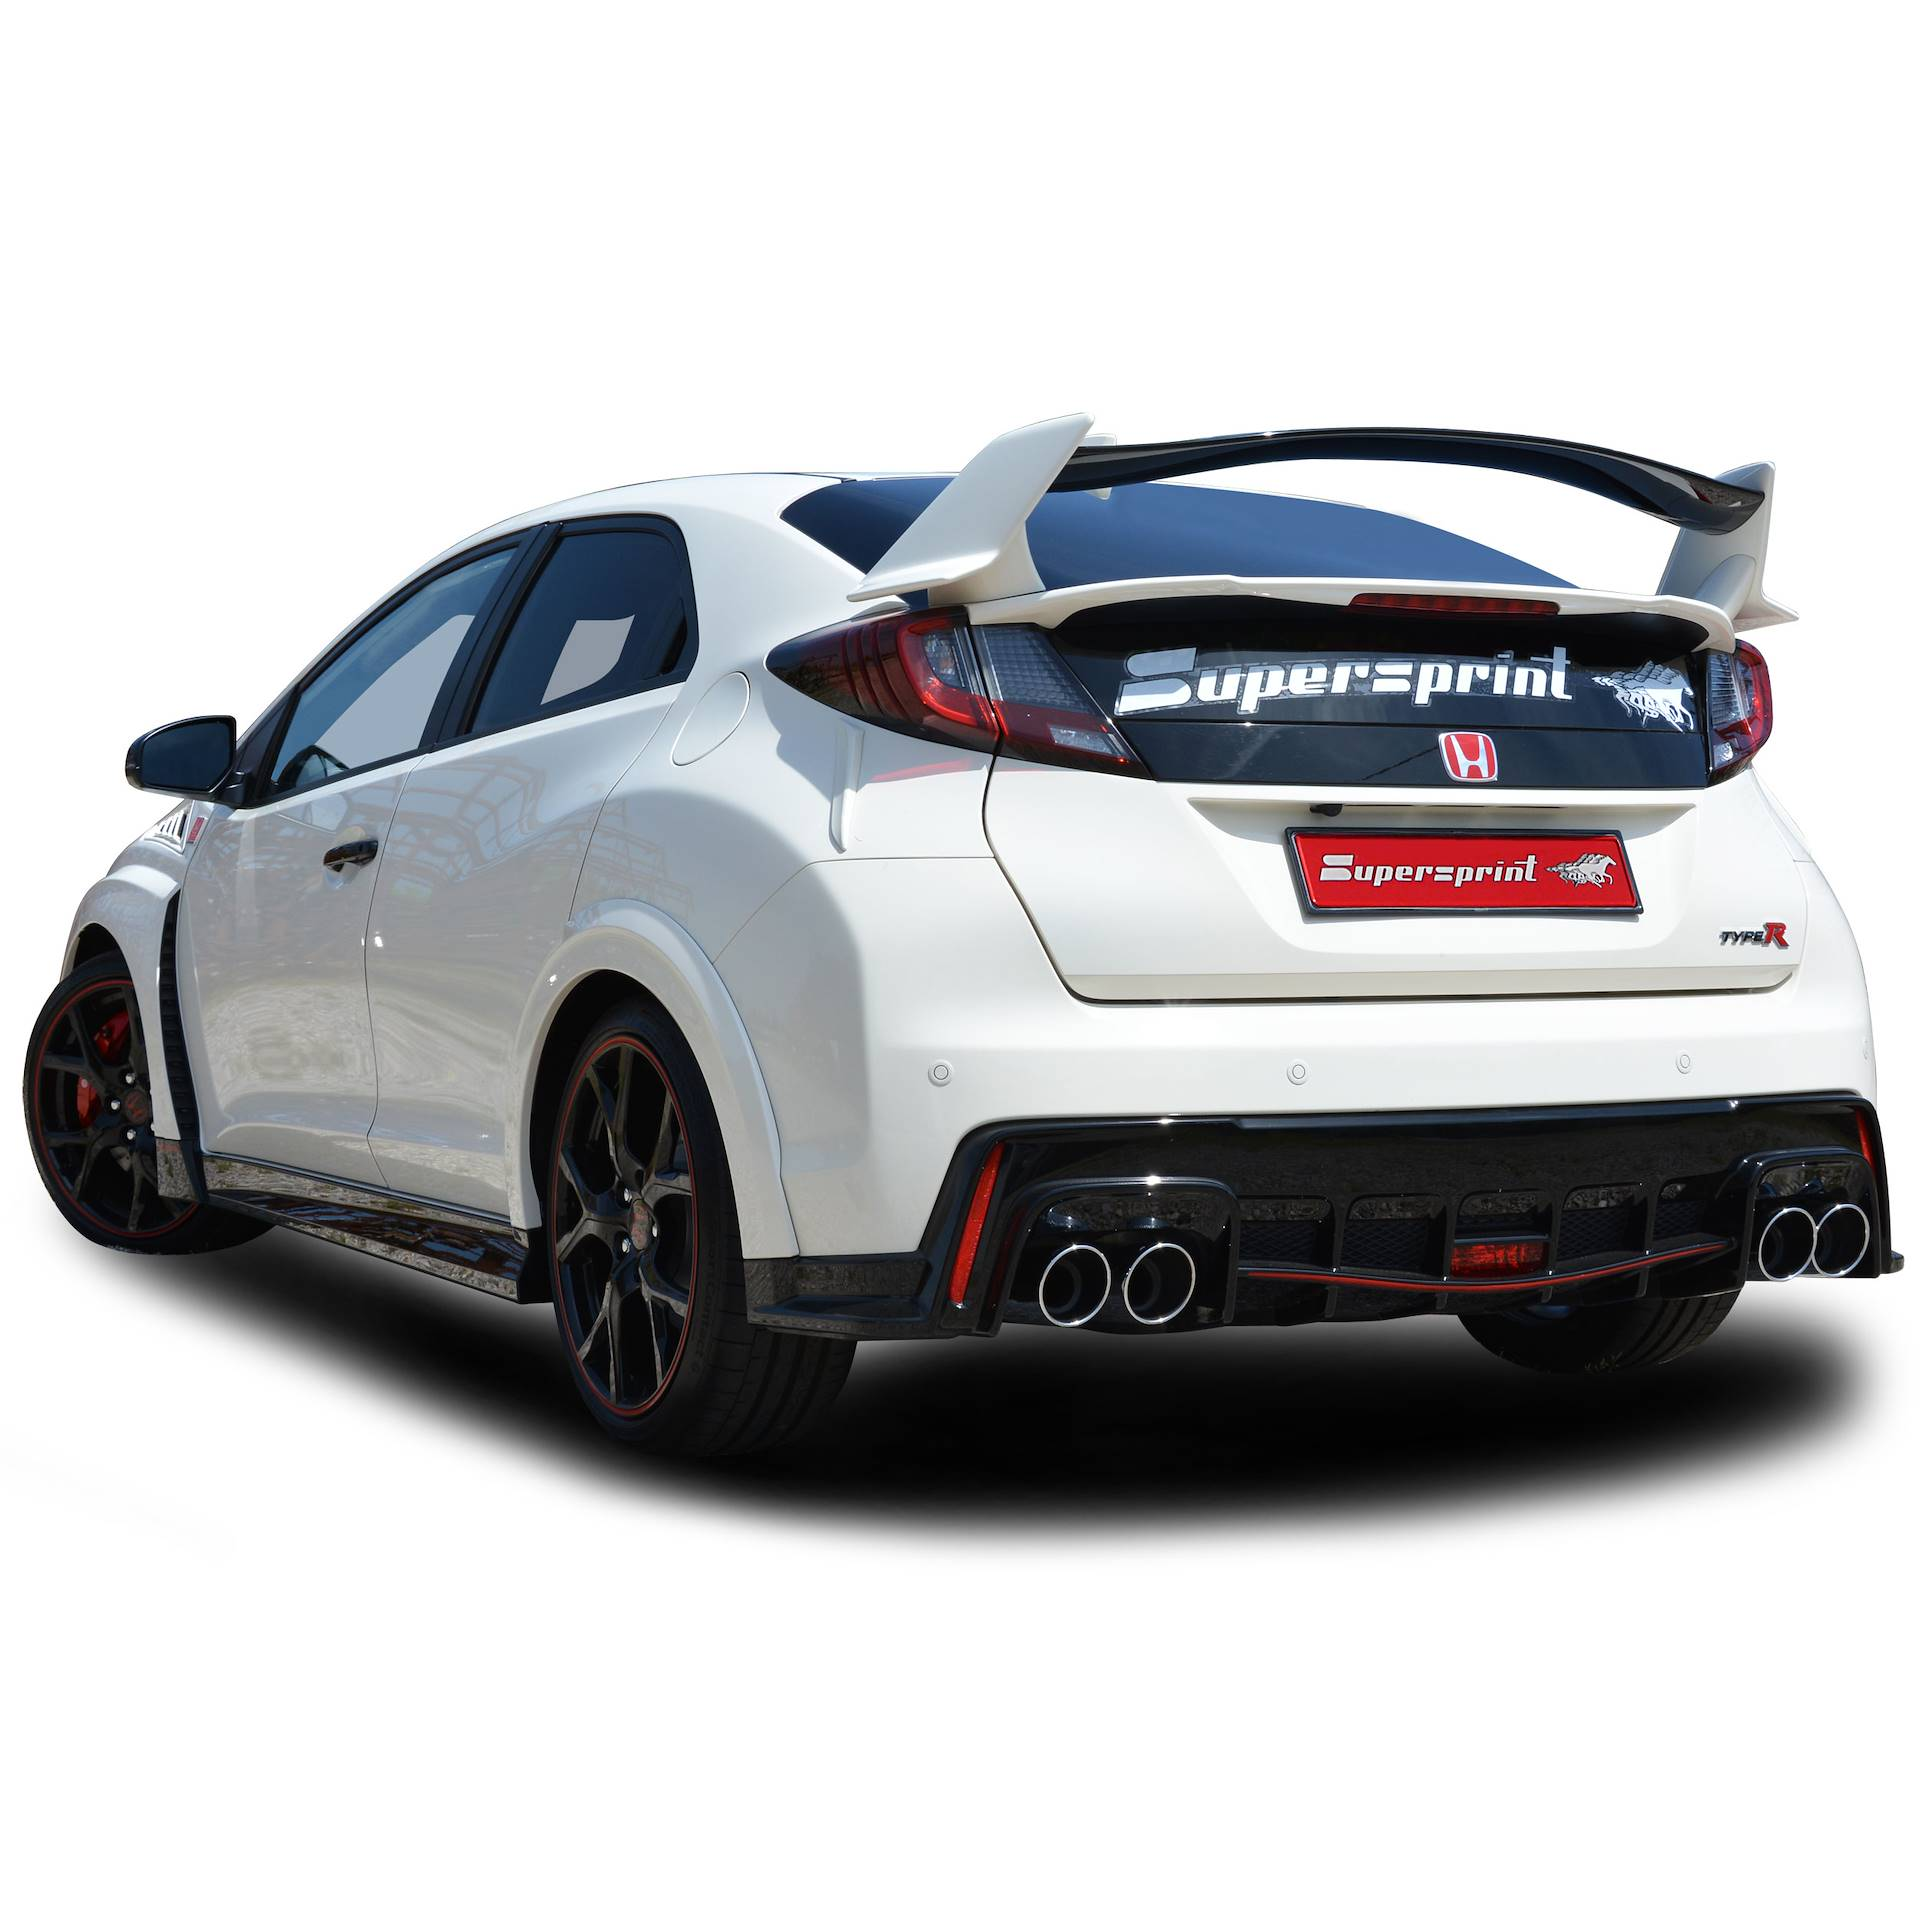 Honda - HONDA CIVIC 2.0i Turbo TYPE-R (310Hp) 2015 ->